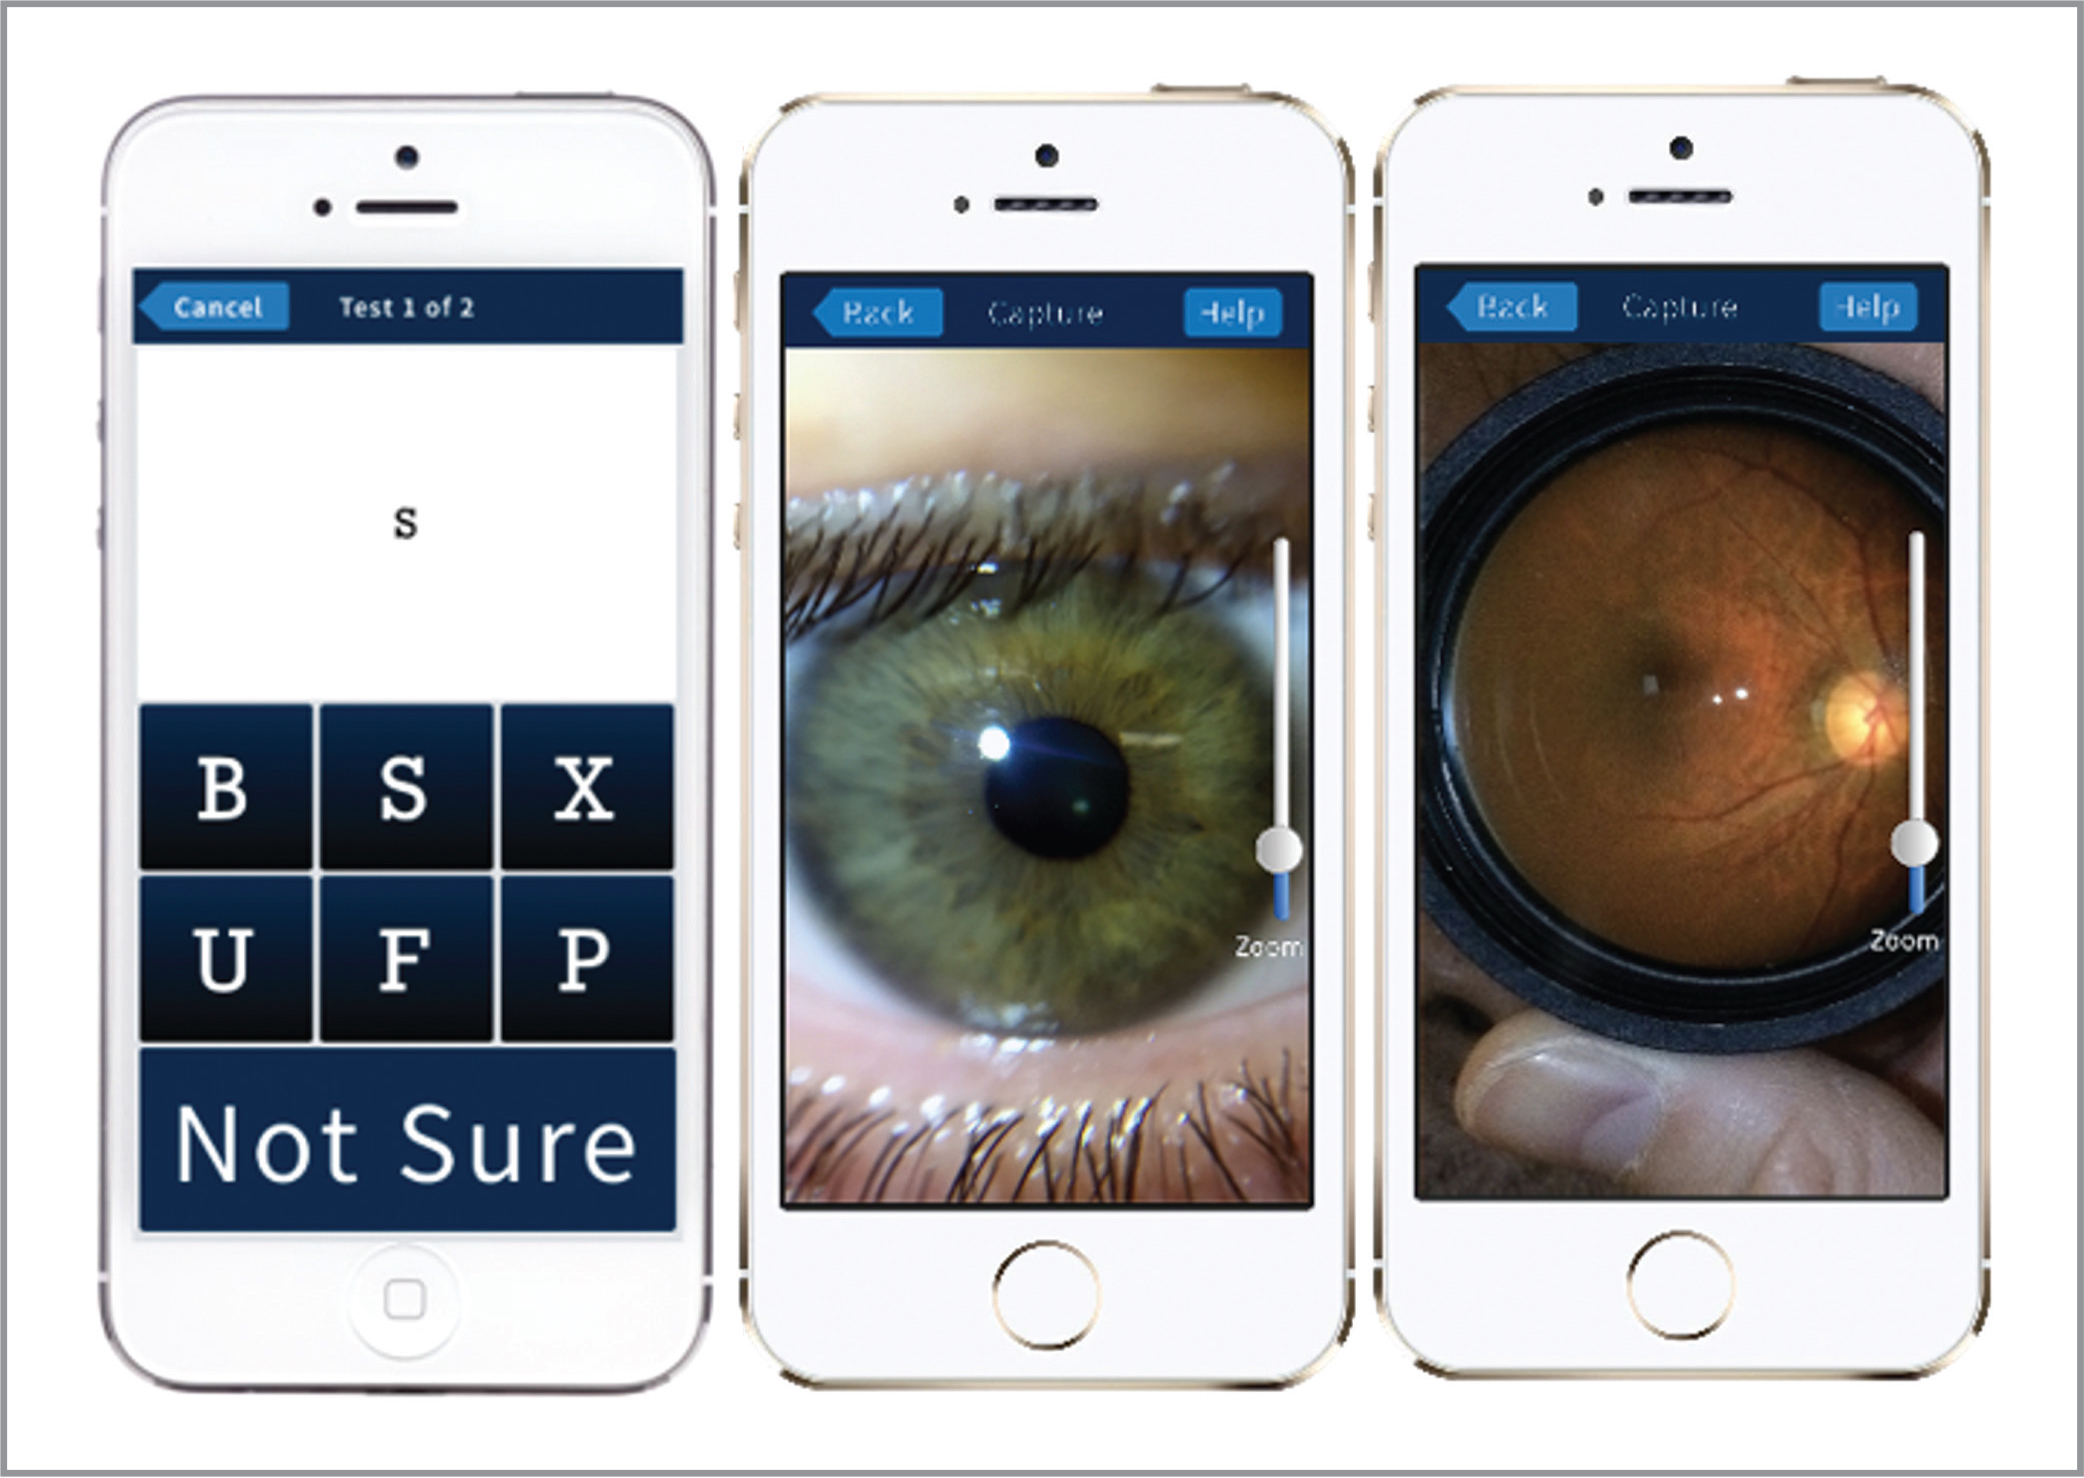 Screen shots of the visual acuity (VA) testing app used with the Paxos Scope. (Left) VA measurement using an interactive alphabet letter match. (Middle) An example of an anterior segment photograph captured with the Paxos Scope adapter. (Right) An example of a dilated fundus photograph taken with the same adapter. Photographs and data collected through the app are securely uploaded through a HIPAA-compliant telemedicine platform (Verana Health, formerly Digisight Technologies).